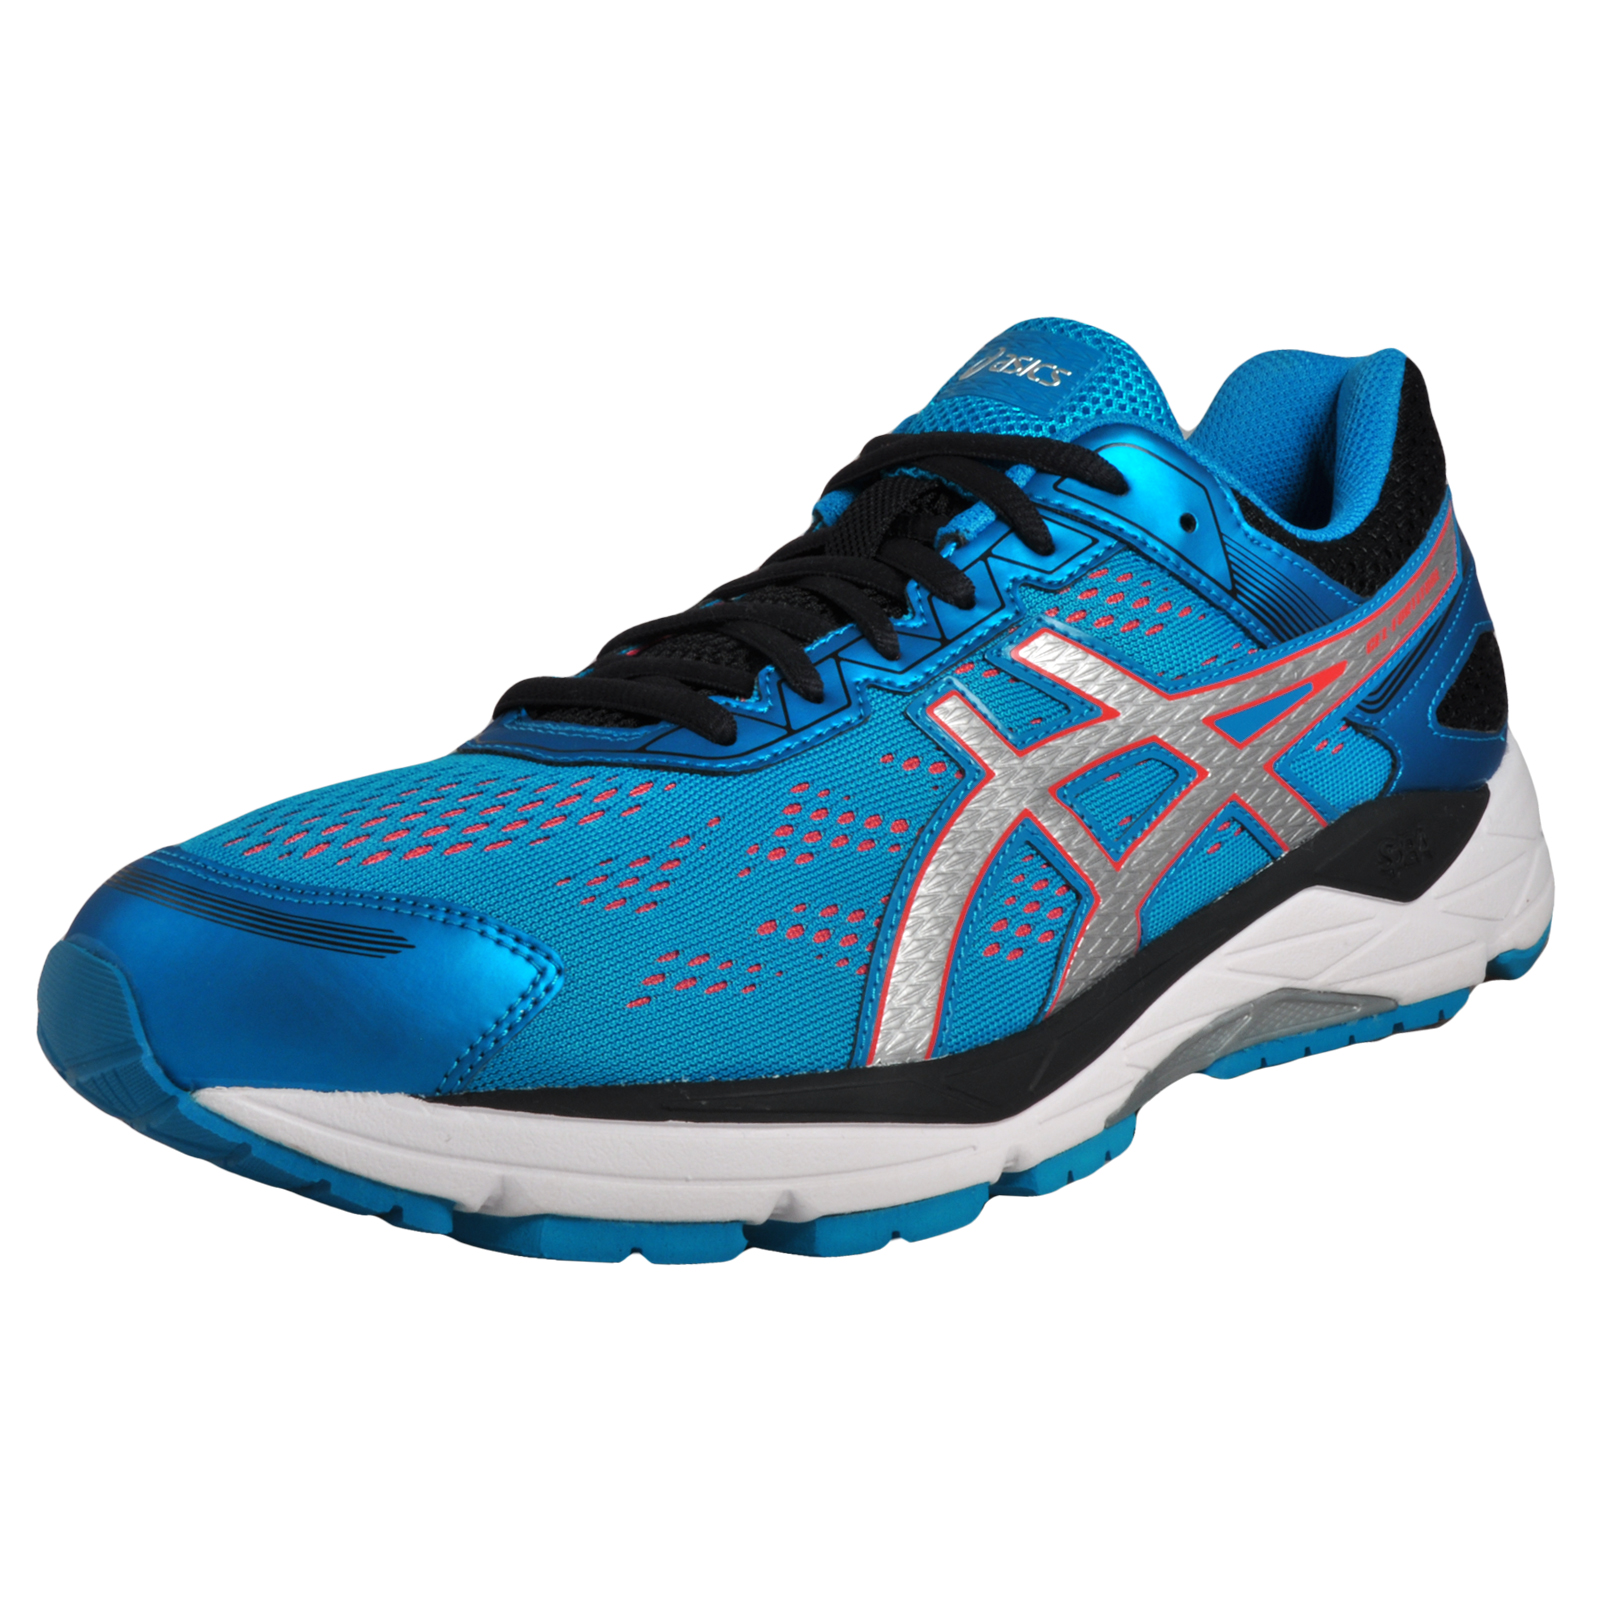 Asics Gel Fortitude 7 (2E) Wide Fit Mens Running Shoes Fitness Gym Trainers  Blue